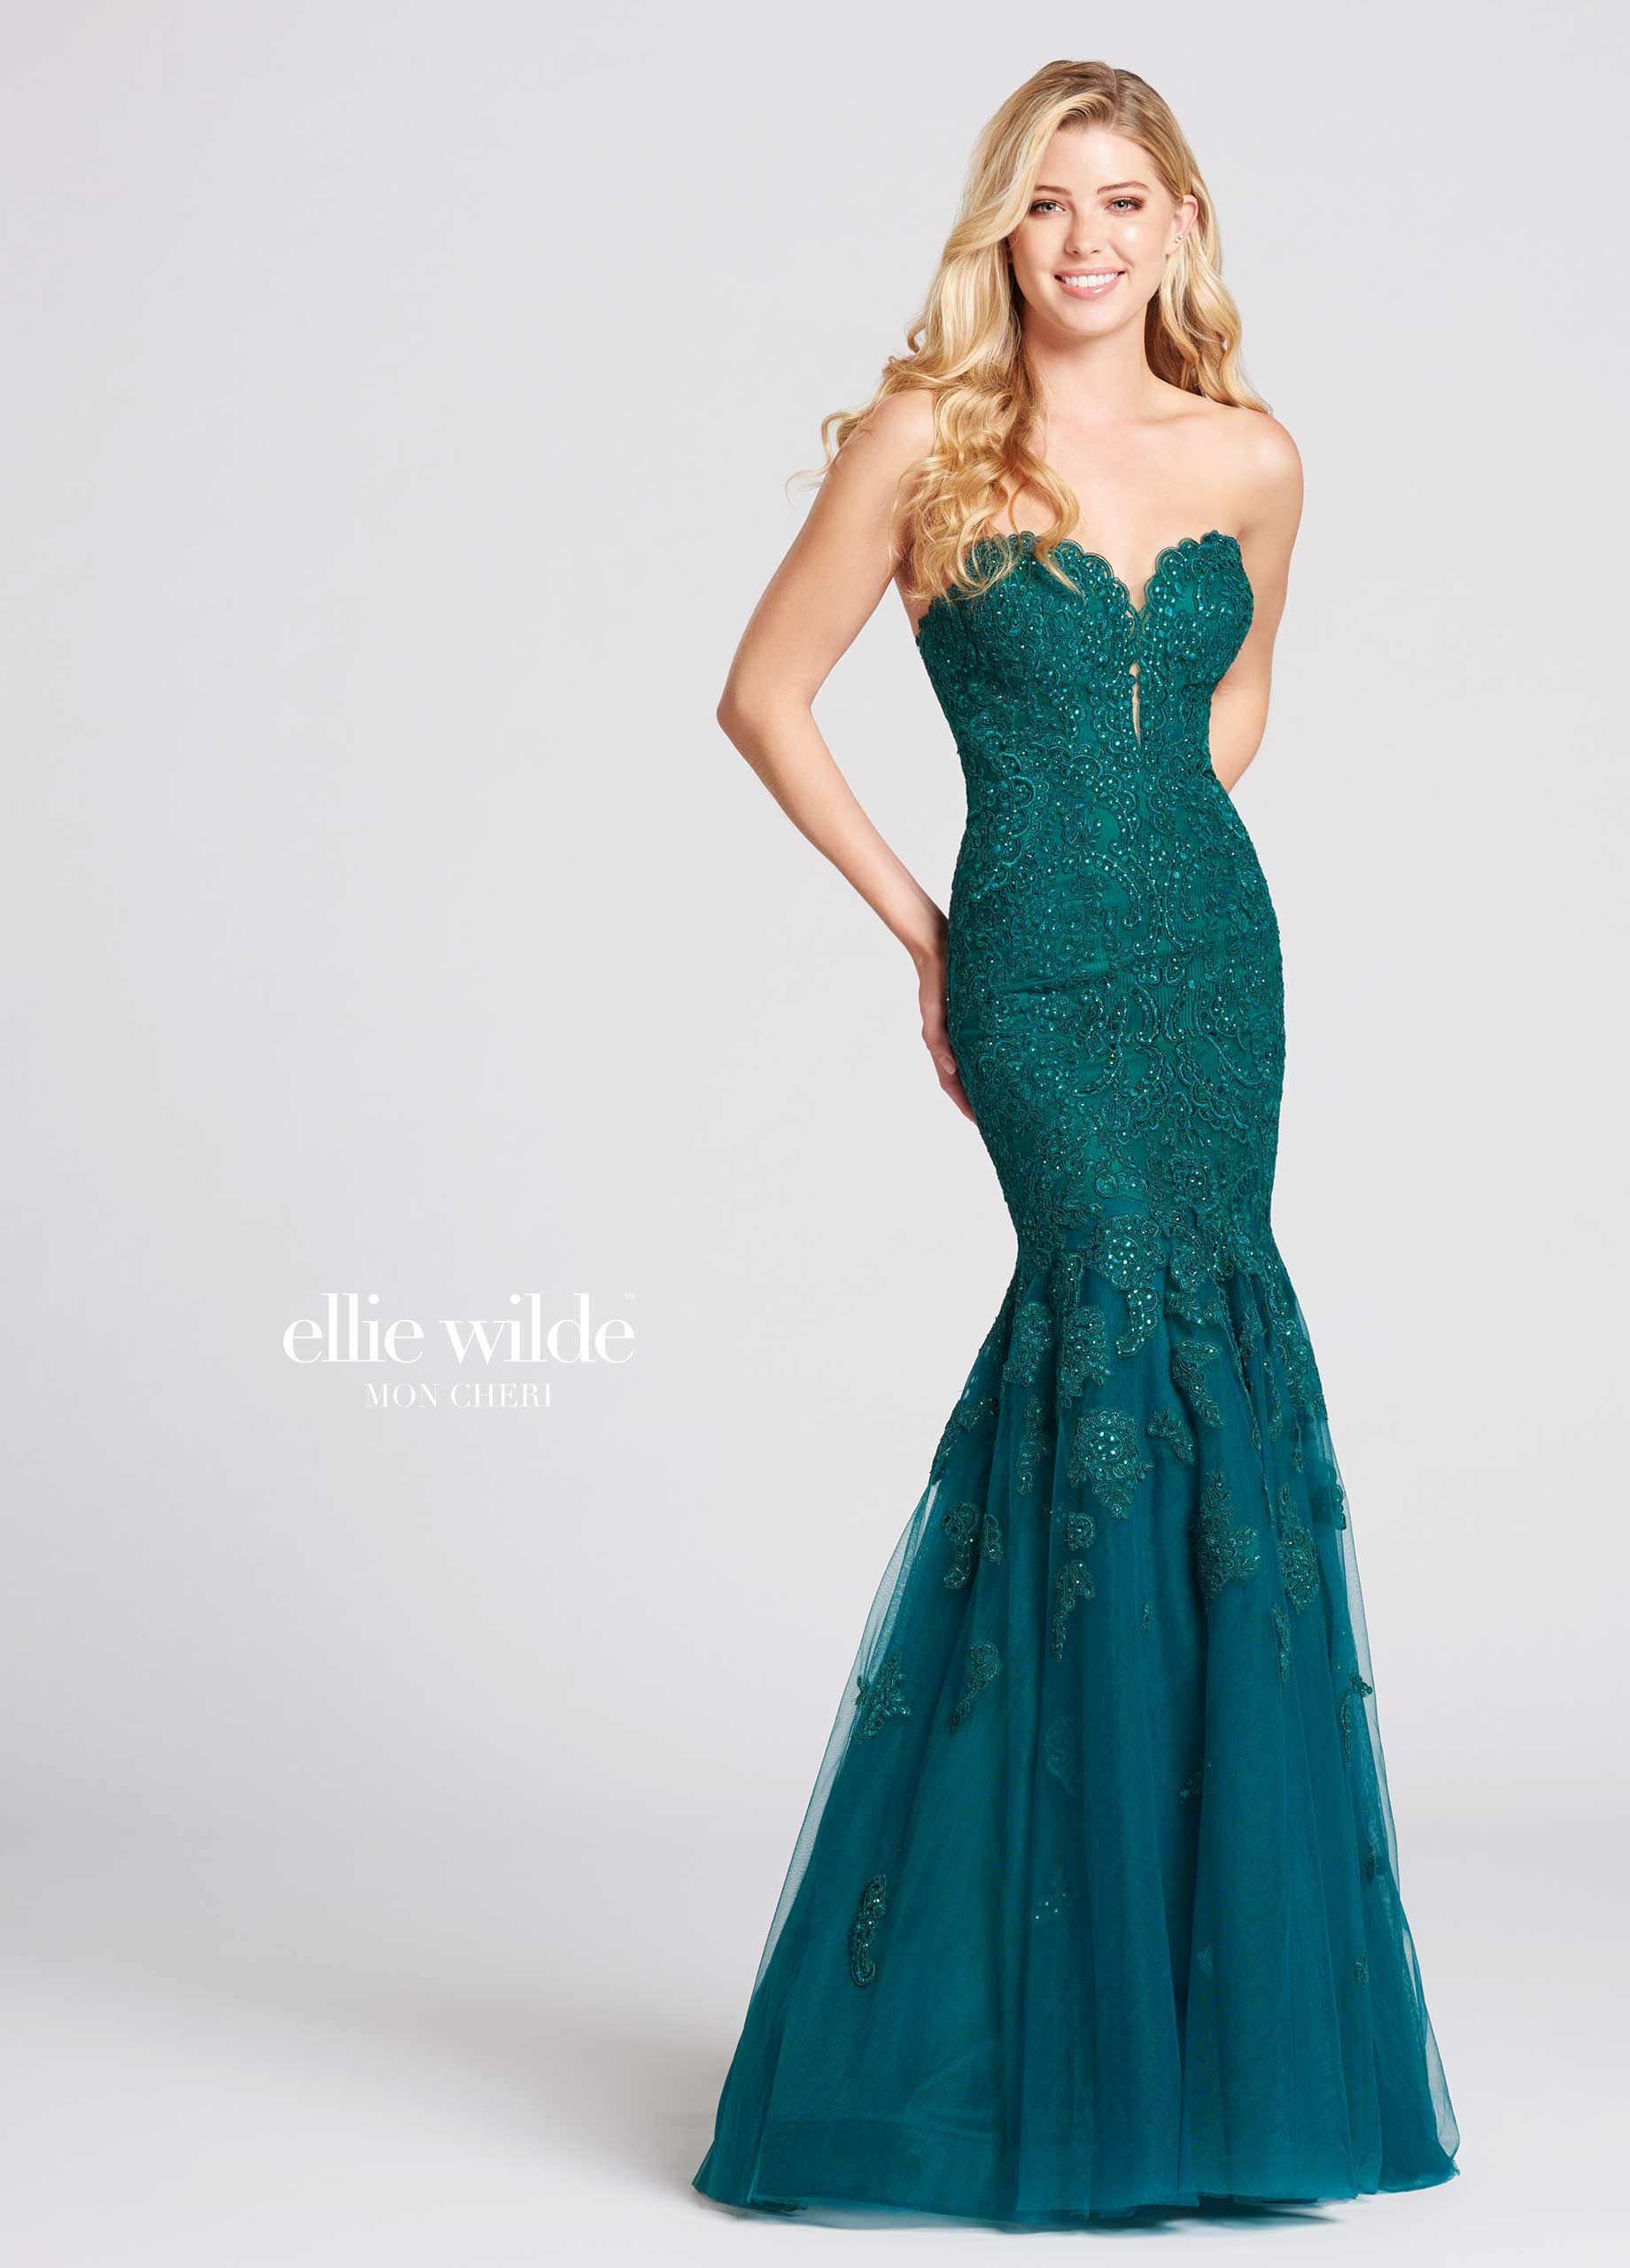 Prom Dresses 2019 Hottest Styles Prom Dress Gowns Gowns Dresses Beautiful Prom Dresses Pretty Girl Dresses [ 2560 x 1840 Pixel ]